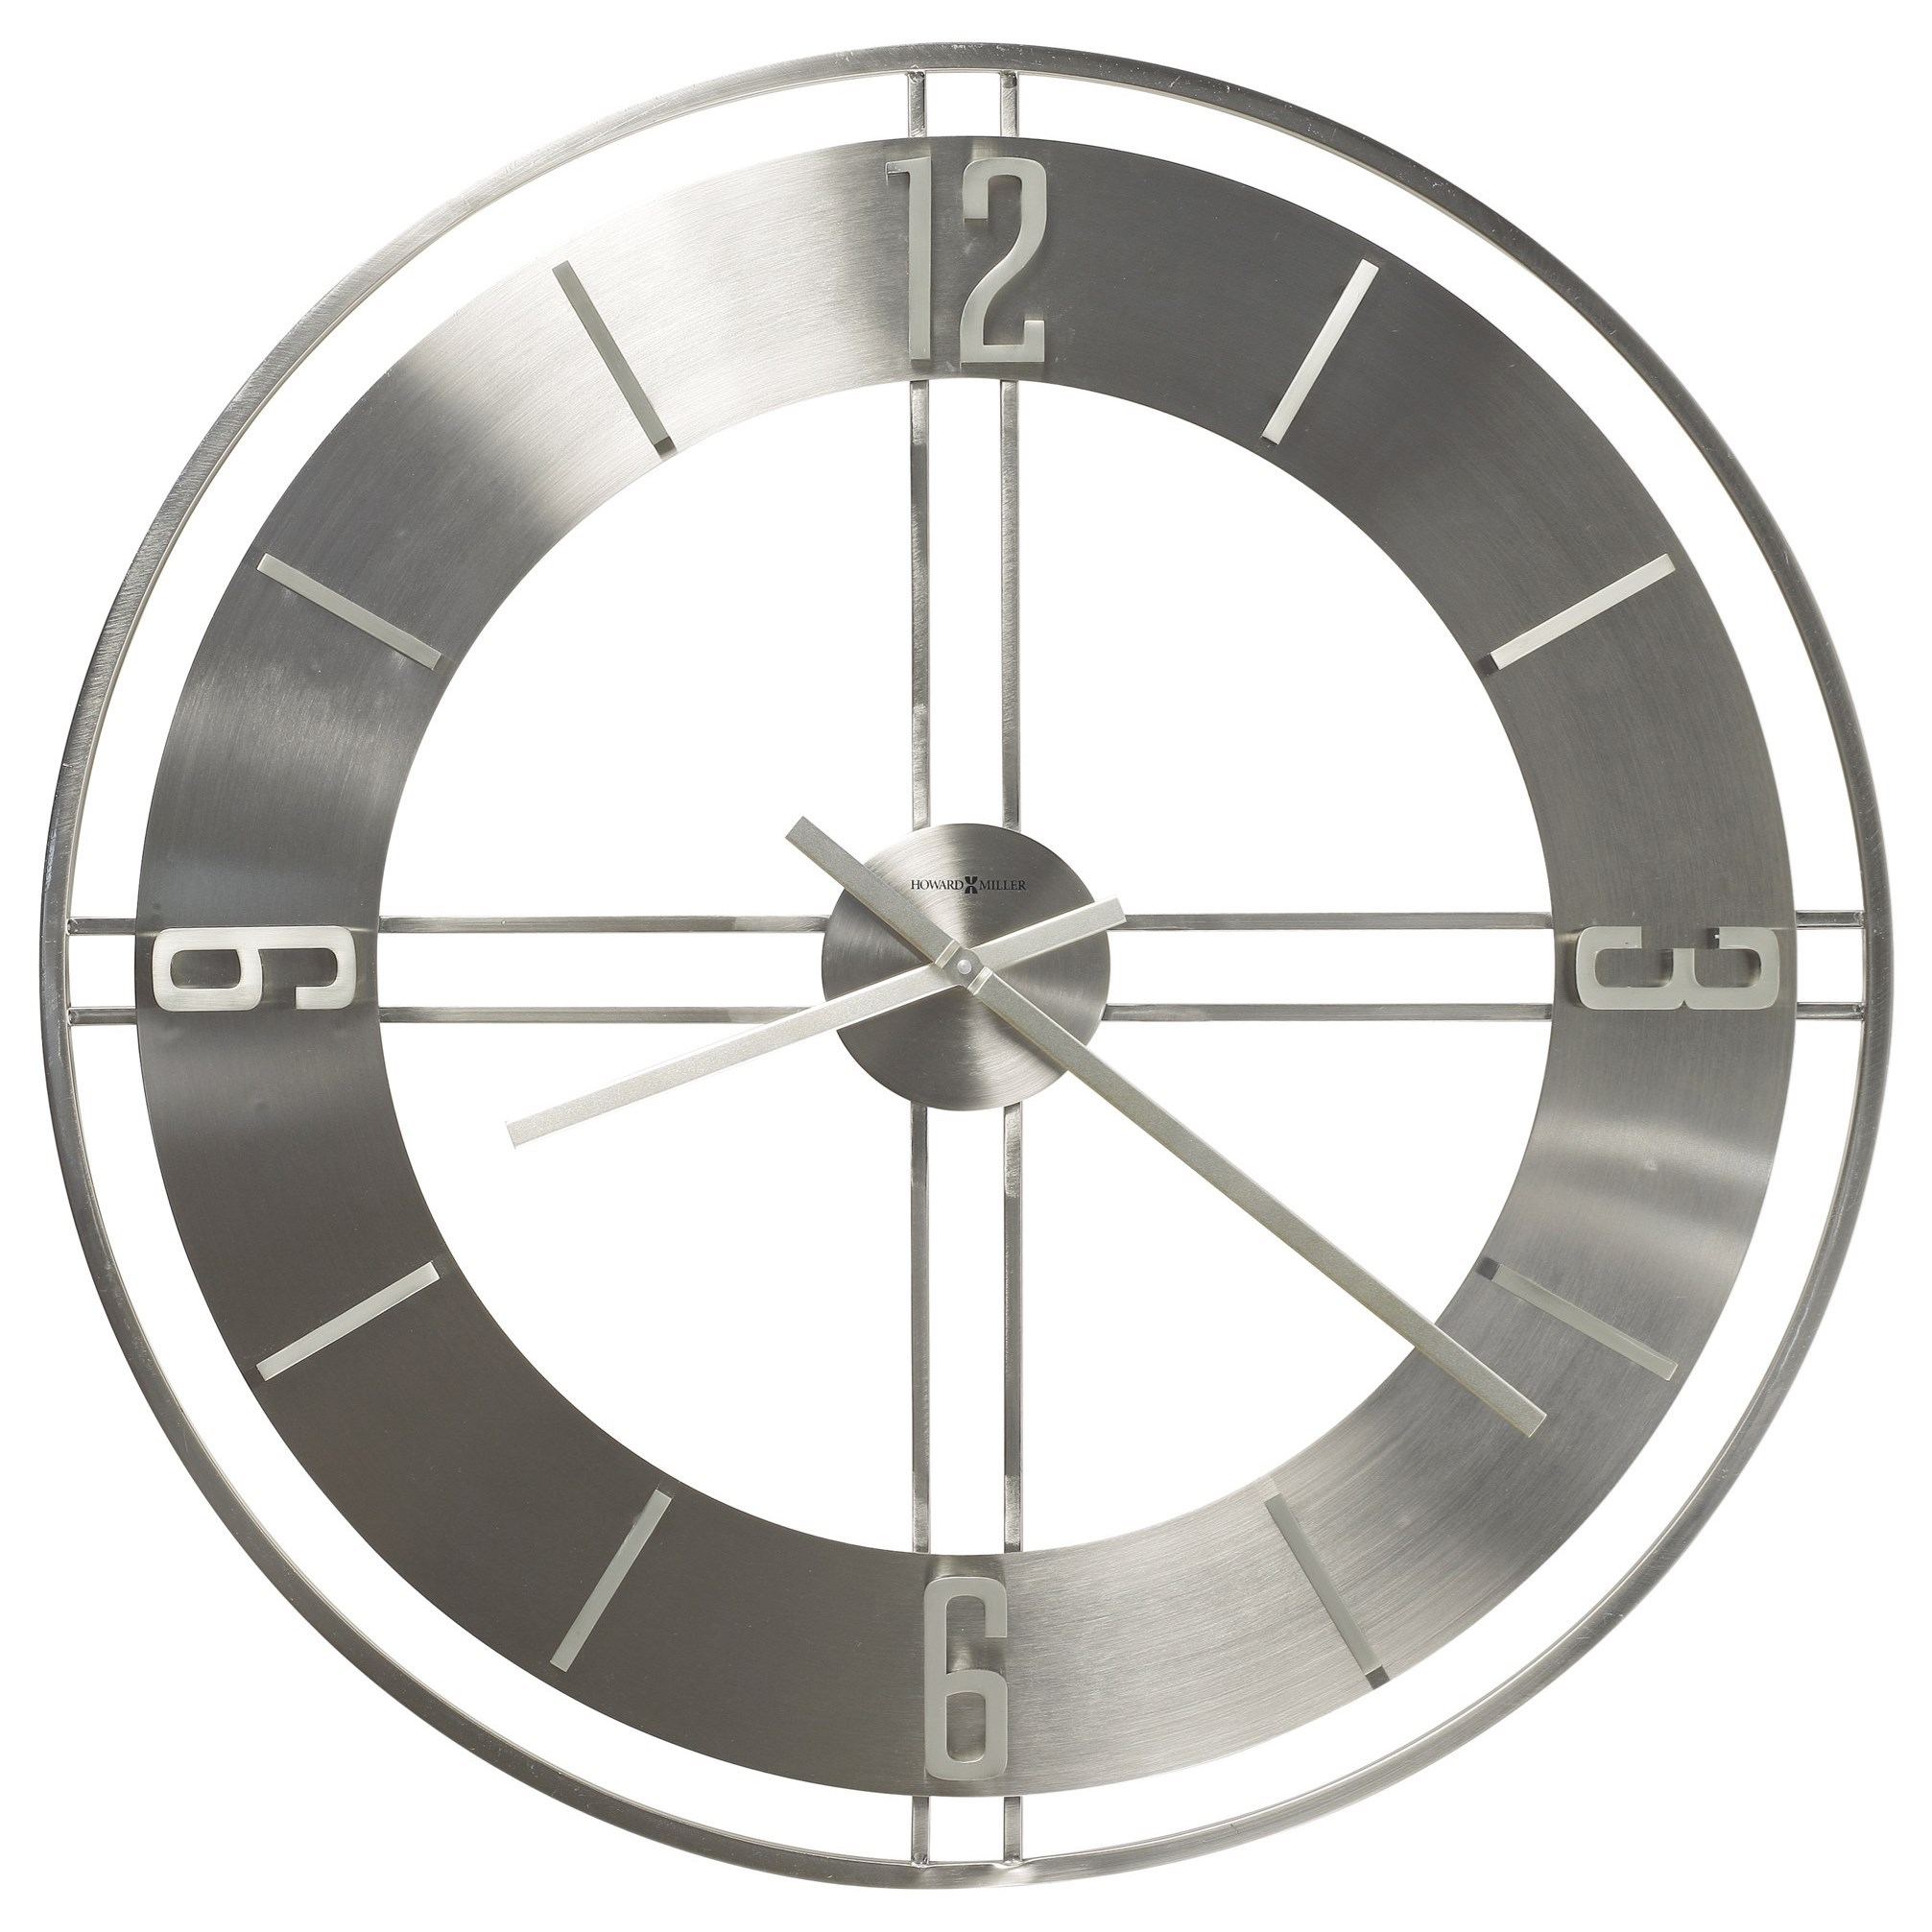 Howard Miller Wall Clocks Stapleton Wall Clock - Item Number: 652-520